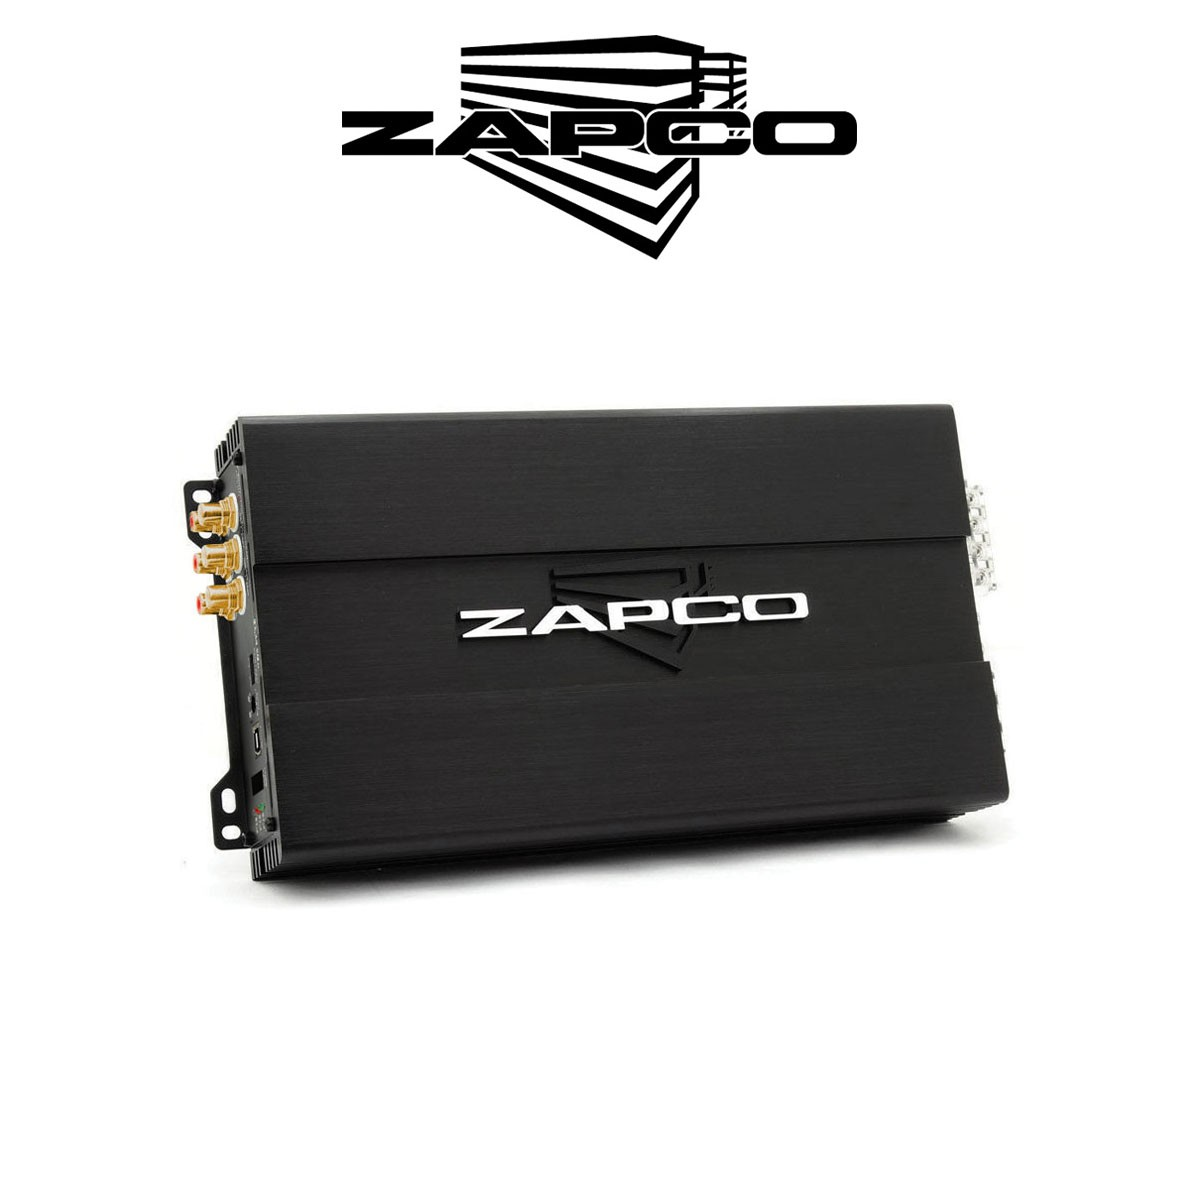 ZAPCO ST-4X DSP - POWER 4 CHANNEL WITH DSP